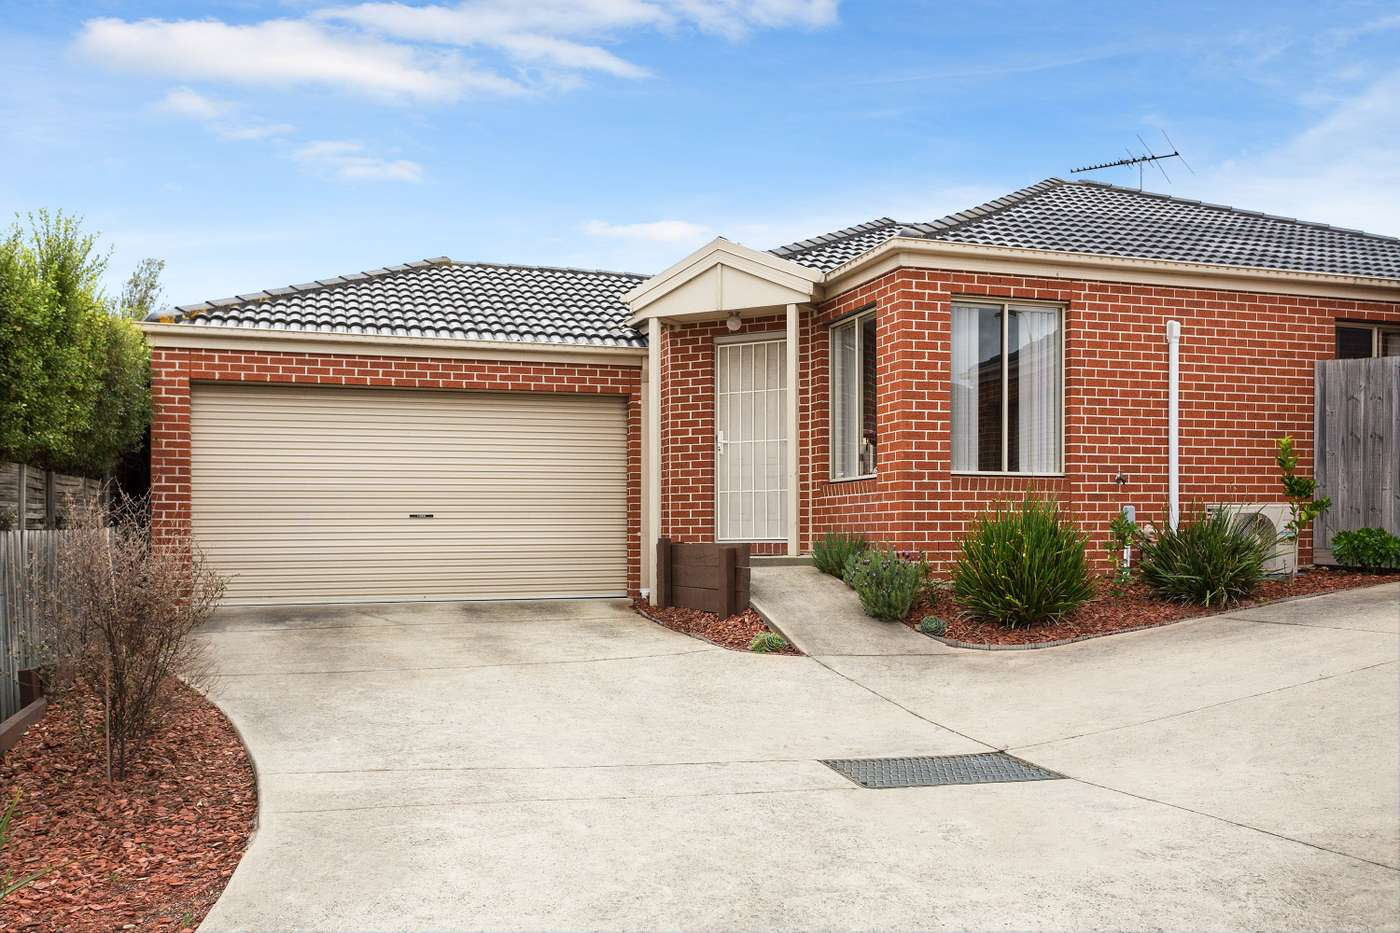 Main view of Homely house listing, 2/27 Silver Gum Drive, Pakenham, VIC 3810